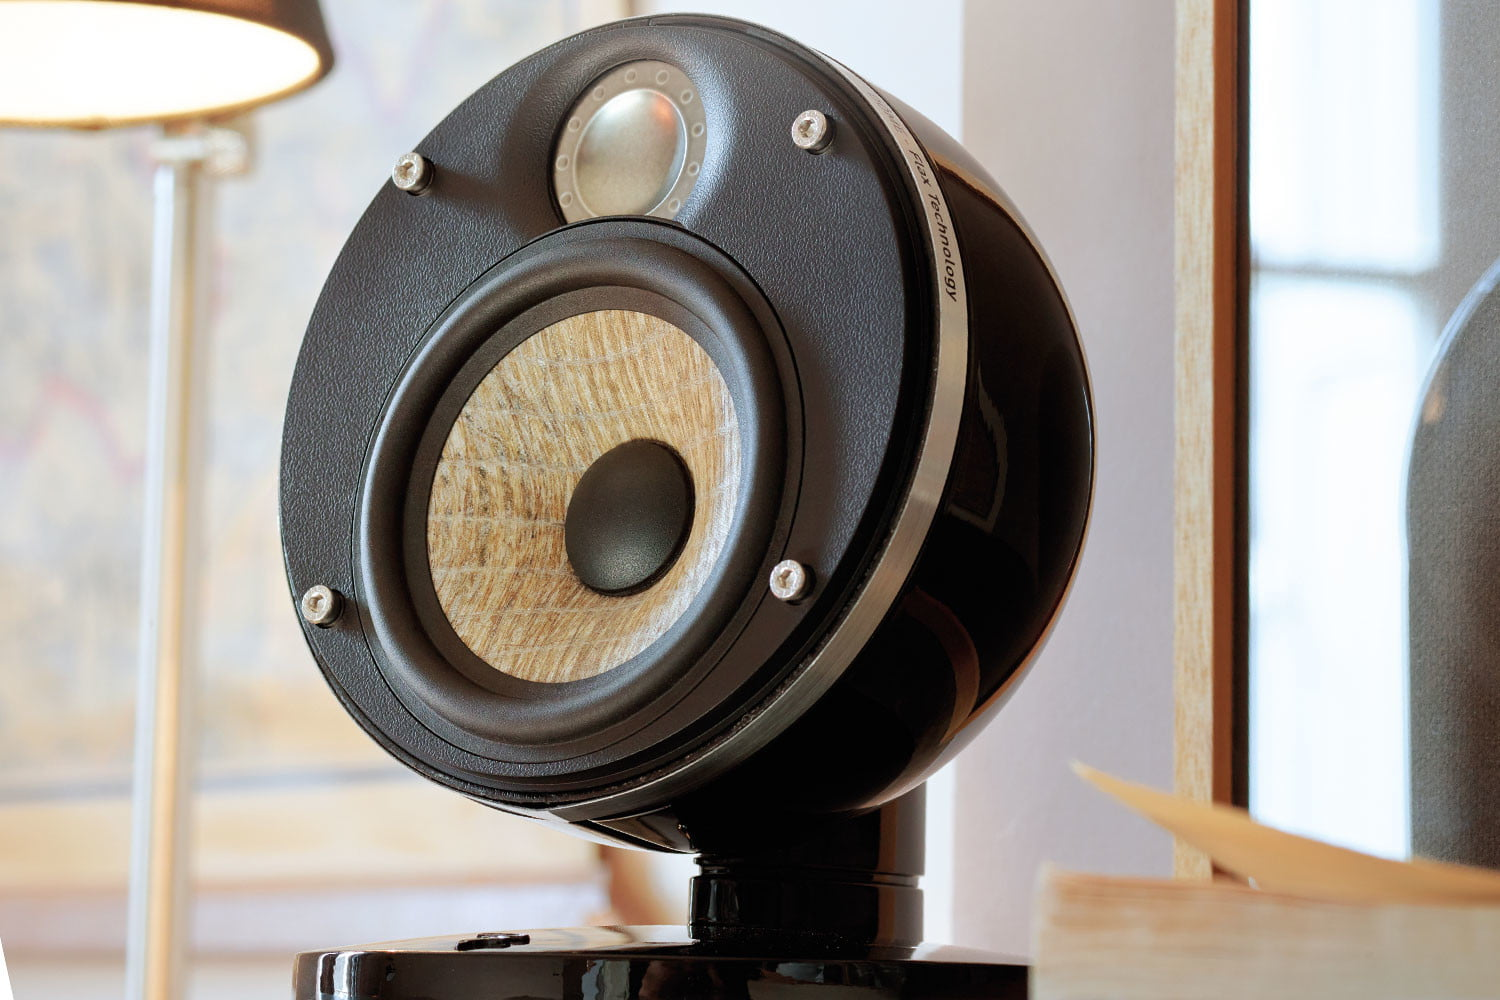 focal 512 dome flax speaker system dolby atmos dtsx ceiling 3